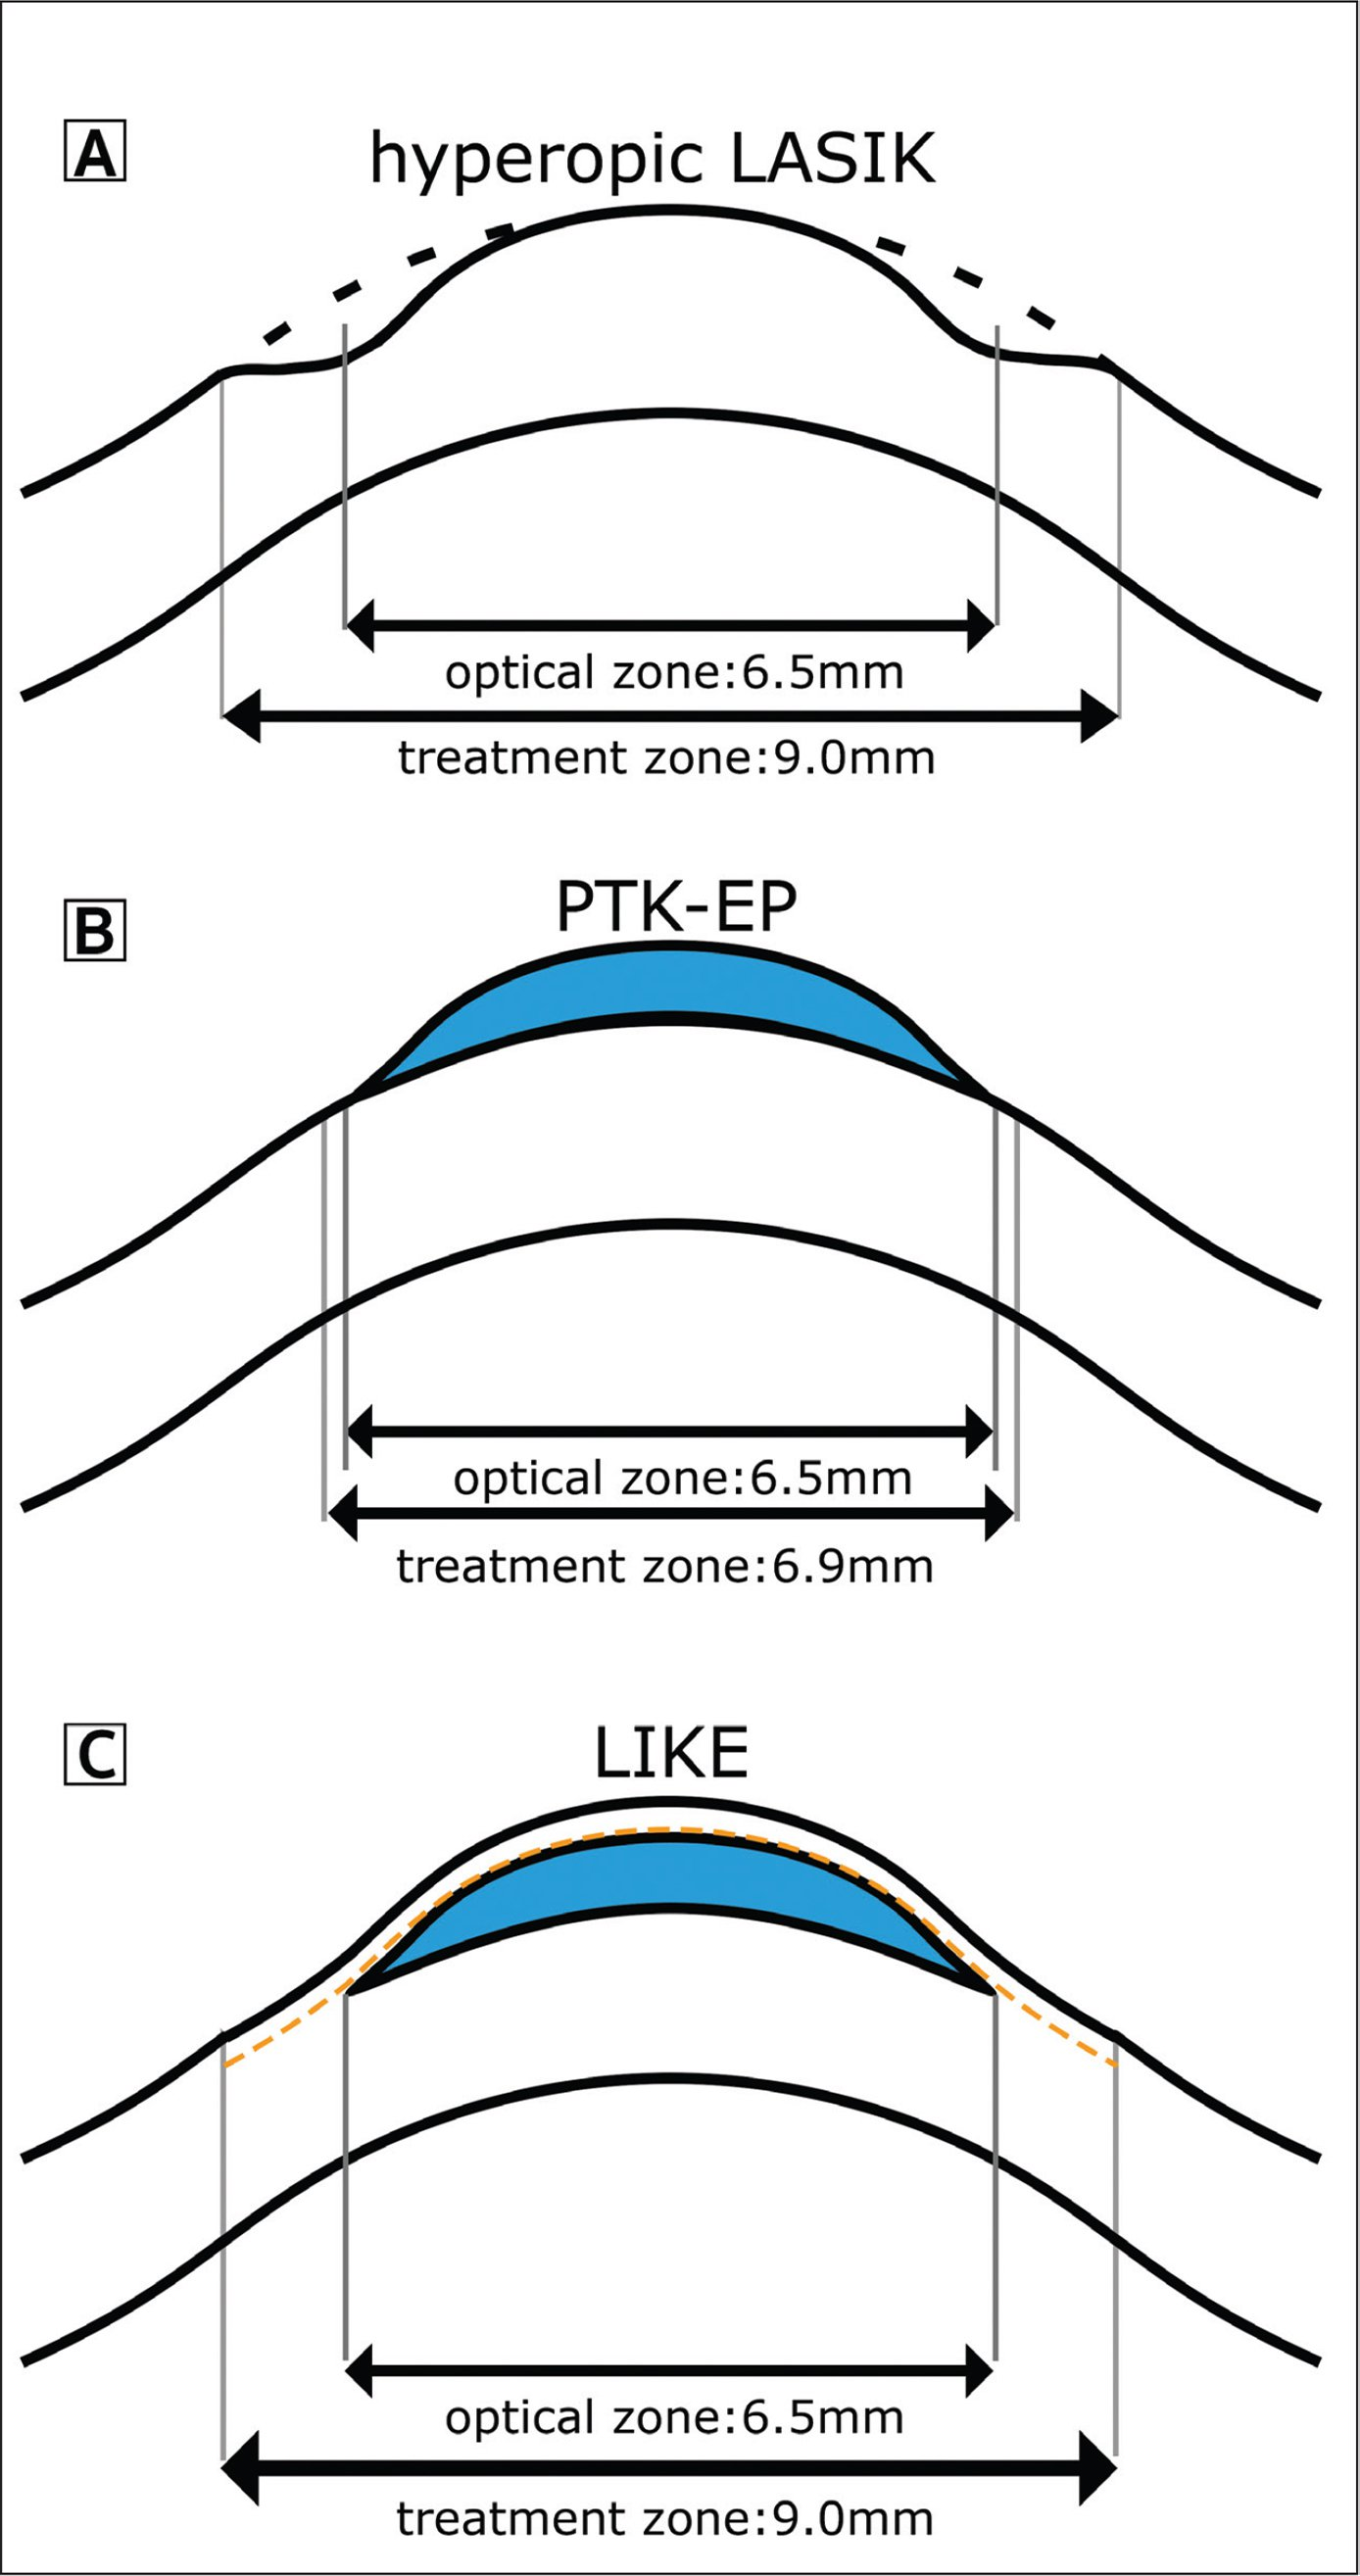 The diagram shows three refractive surgeries to correct the same refraction of hyperopia. The optical zone of surgeries is 6.5 mm and corneal flap diameter is 9 mm as treatment zone. The treatment zone of transepithelial phototherapeutic keratectomy (PTK-EP) is the area of removal corneal epithelium. (A) Hyperopic laser in situ keratomileusis (LASIK), the mid-peripheral corneal tissue is ablated (dotted line area). (B) In PTK-EP, the refractive lenticule is placed on top of the cornea after epithelium removal (blue area). (C) In femtosecond laser–assisted lenticule intrastromal keratoplasty (LIKE), the refractive lenticule (blue area) is implanted under the corneal LASIK flap (yellow dotted line).